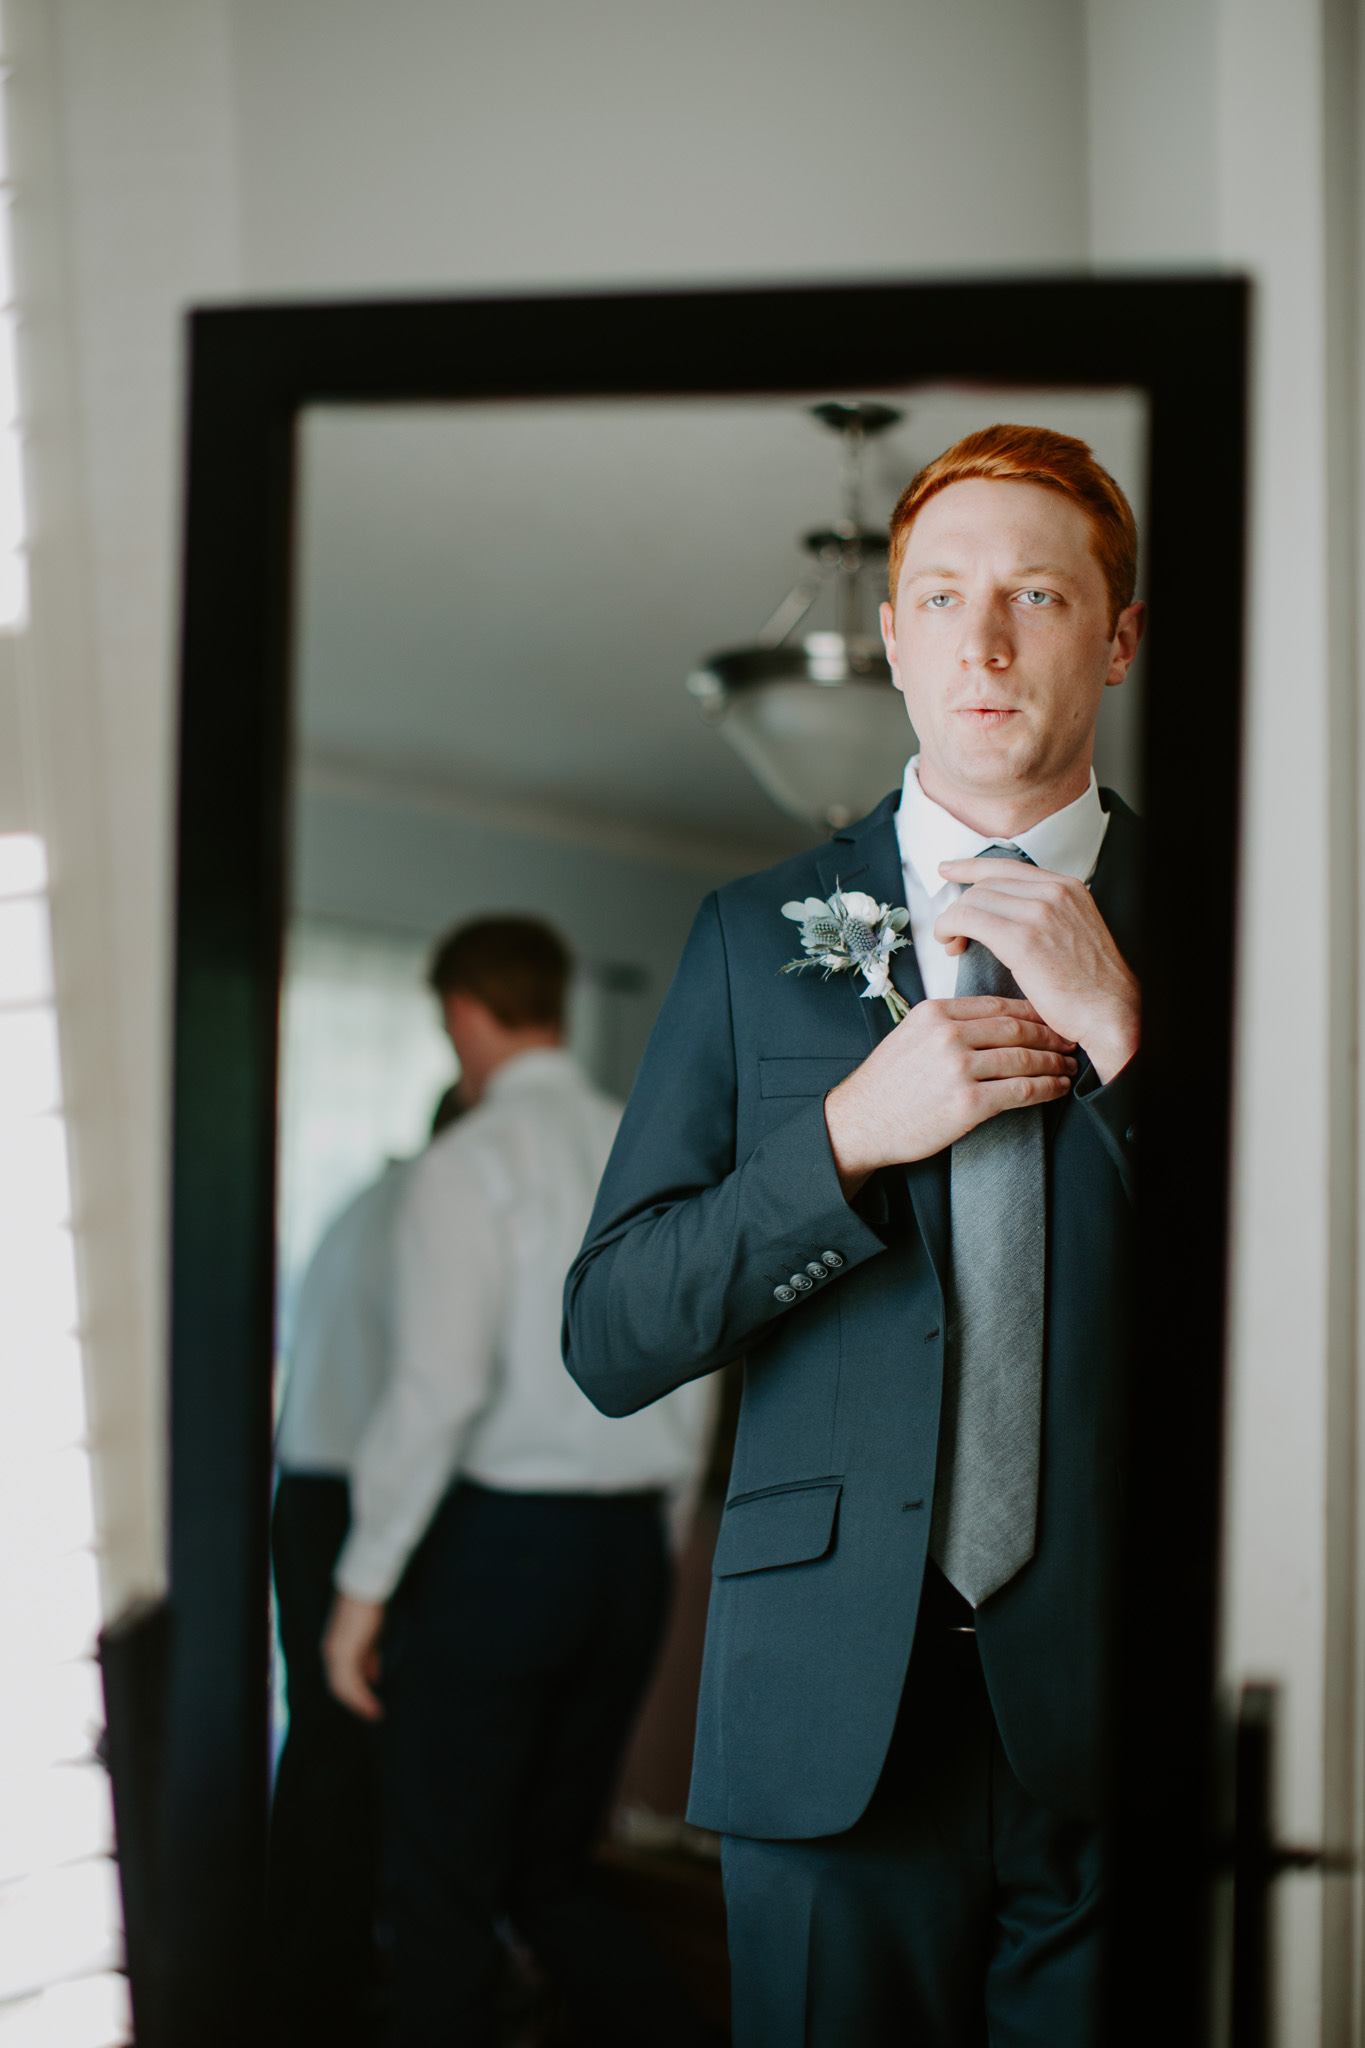 Groom getting ready: Vibrant Summer Wedding at Sinking Creek Farm featured on Nashville Bride Guide